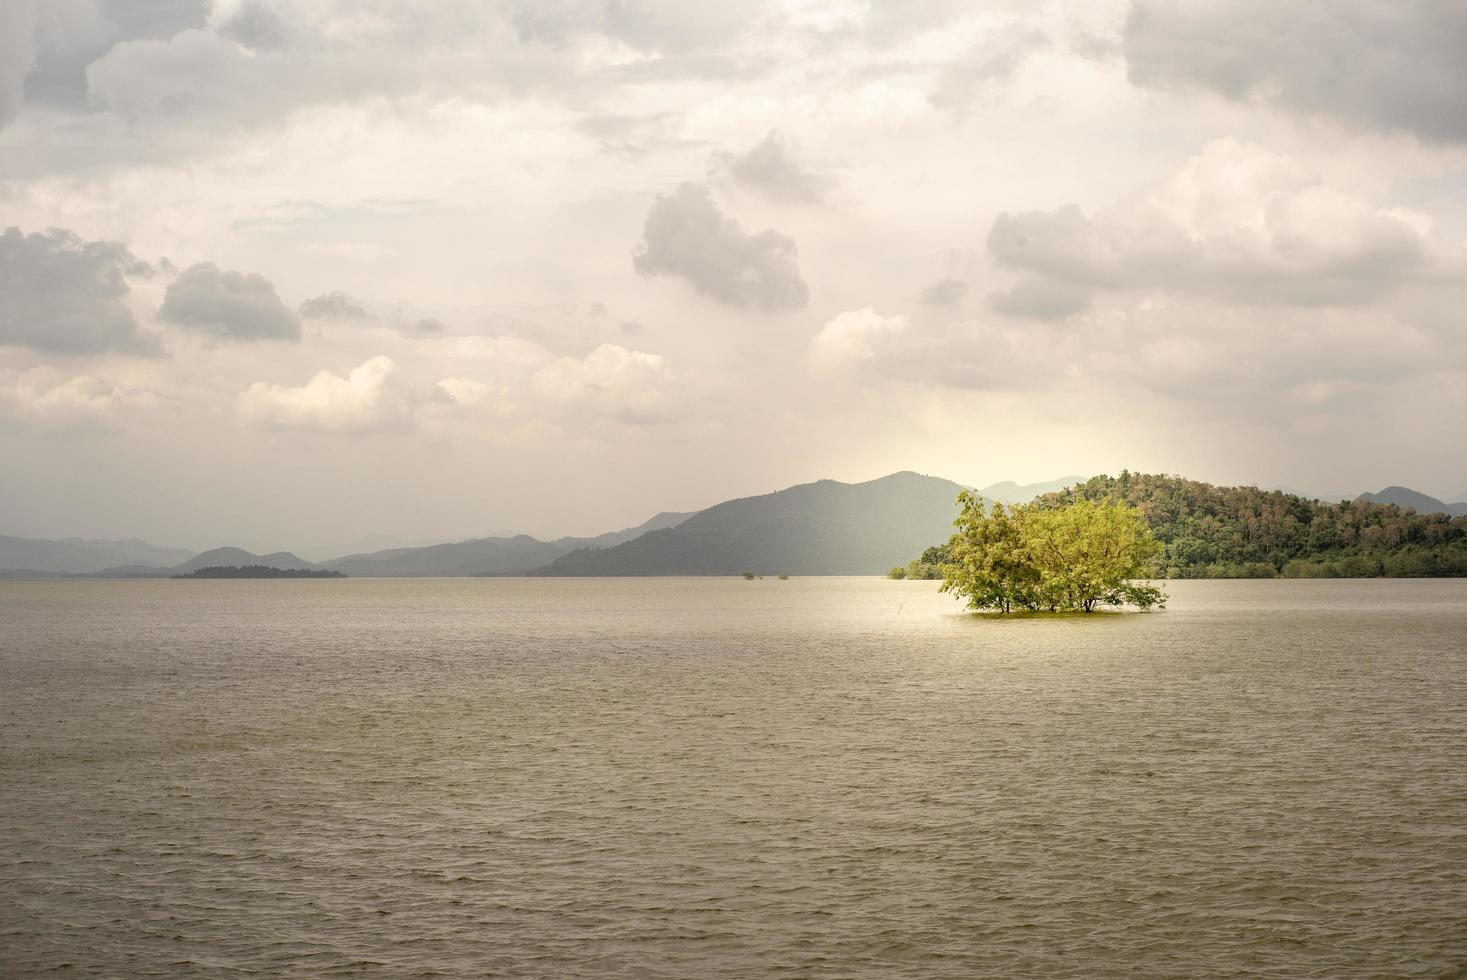 Landscape horizontal line of endless mountains and large lake with trees growing in the water. Water in the natural dam at Phetchaburi photo